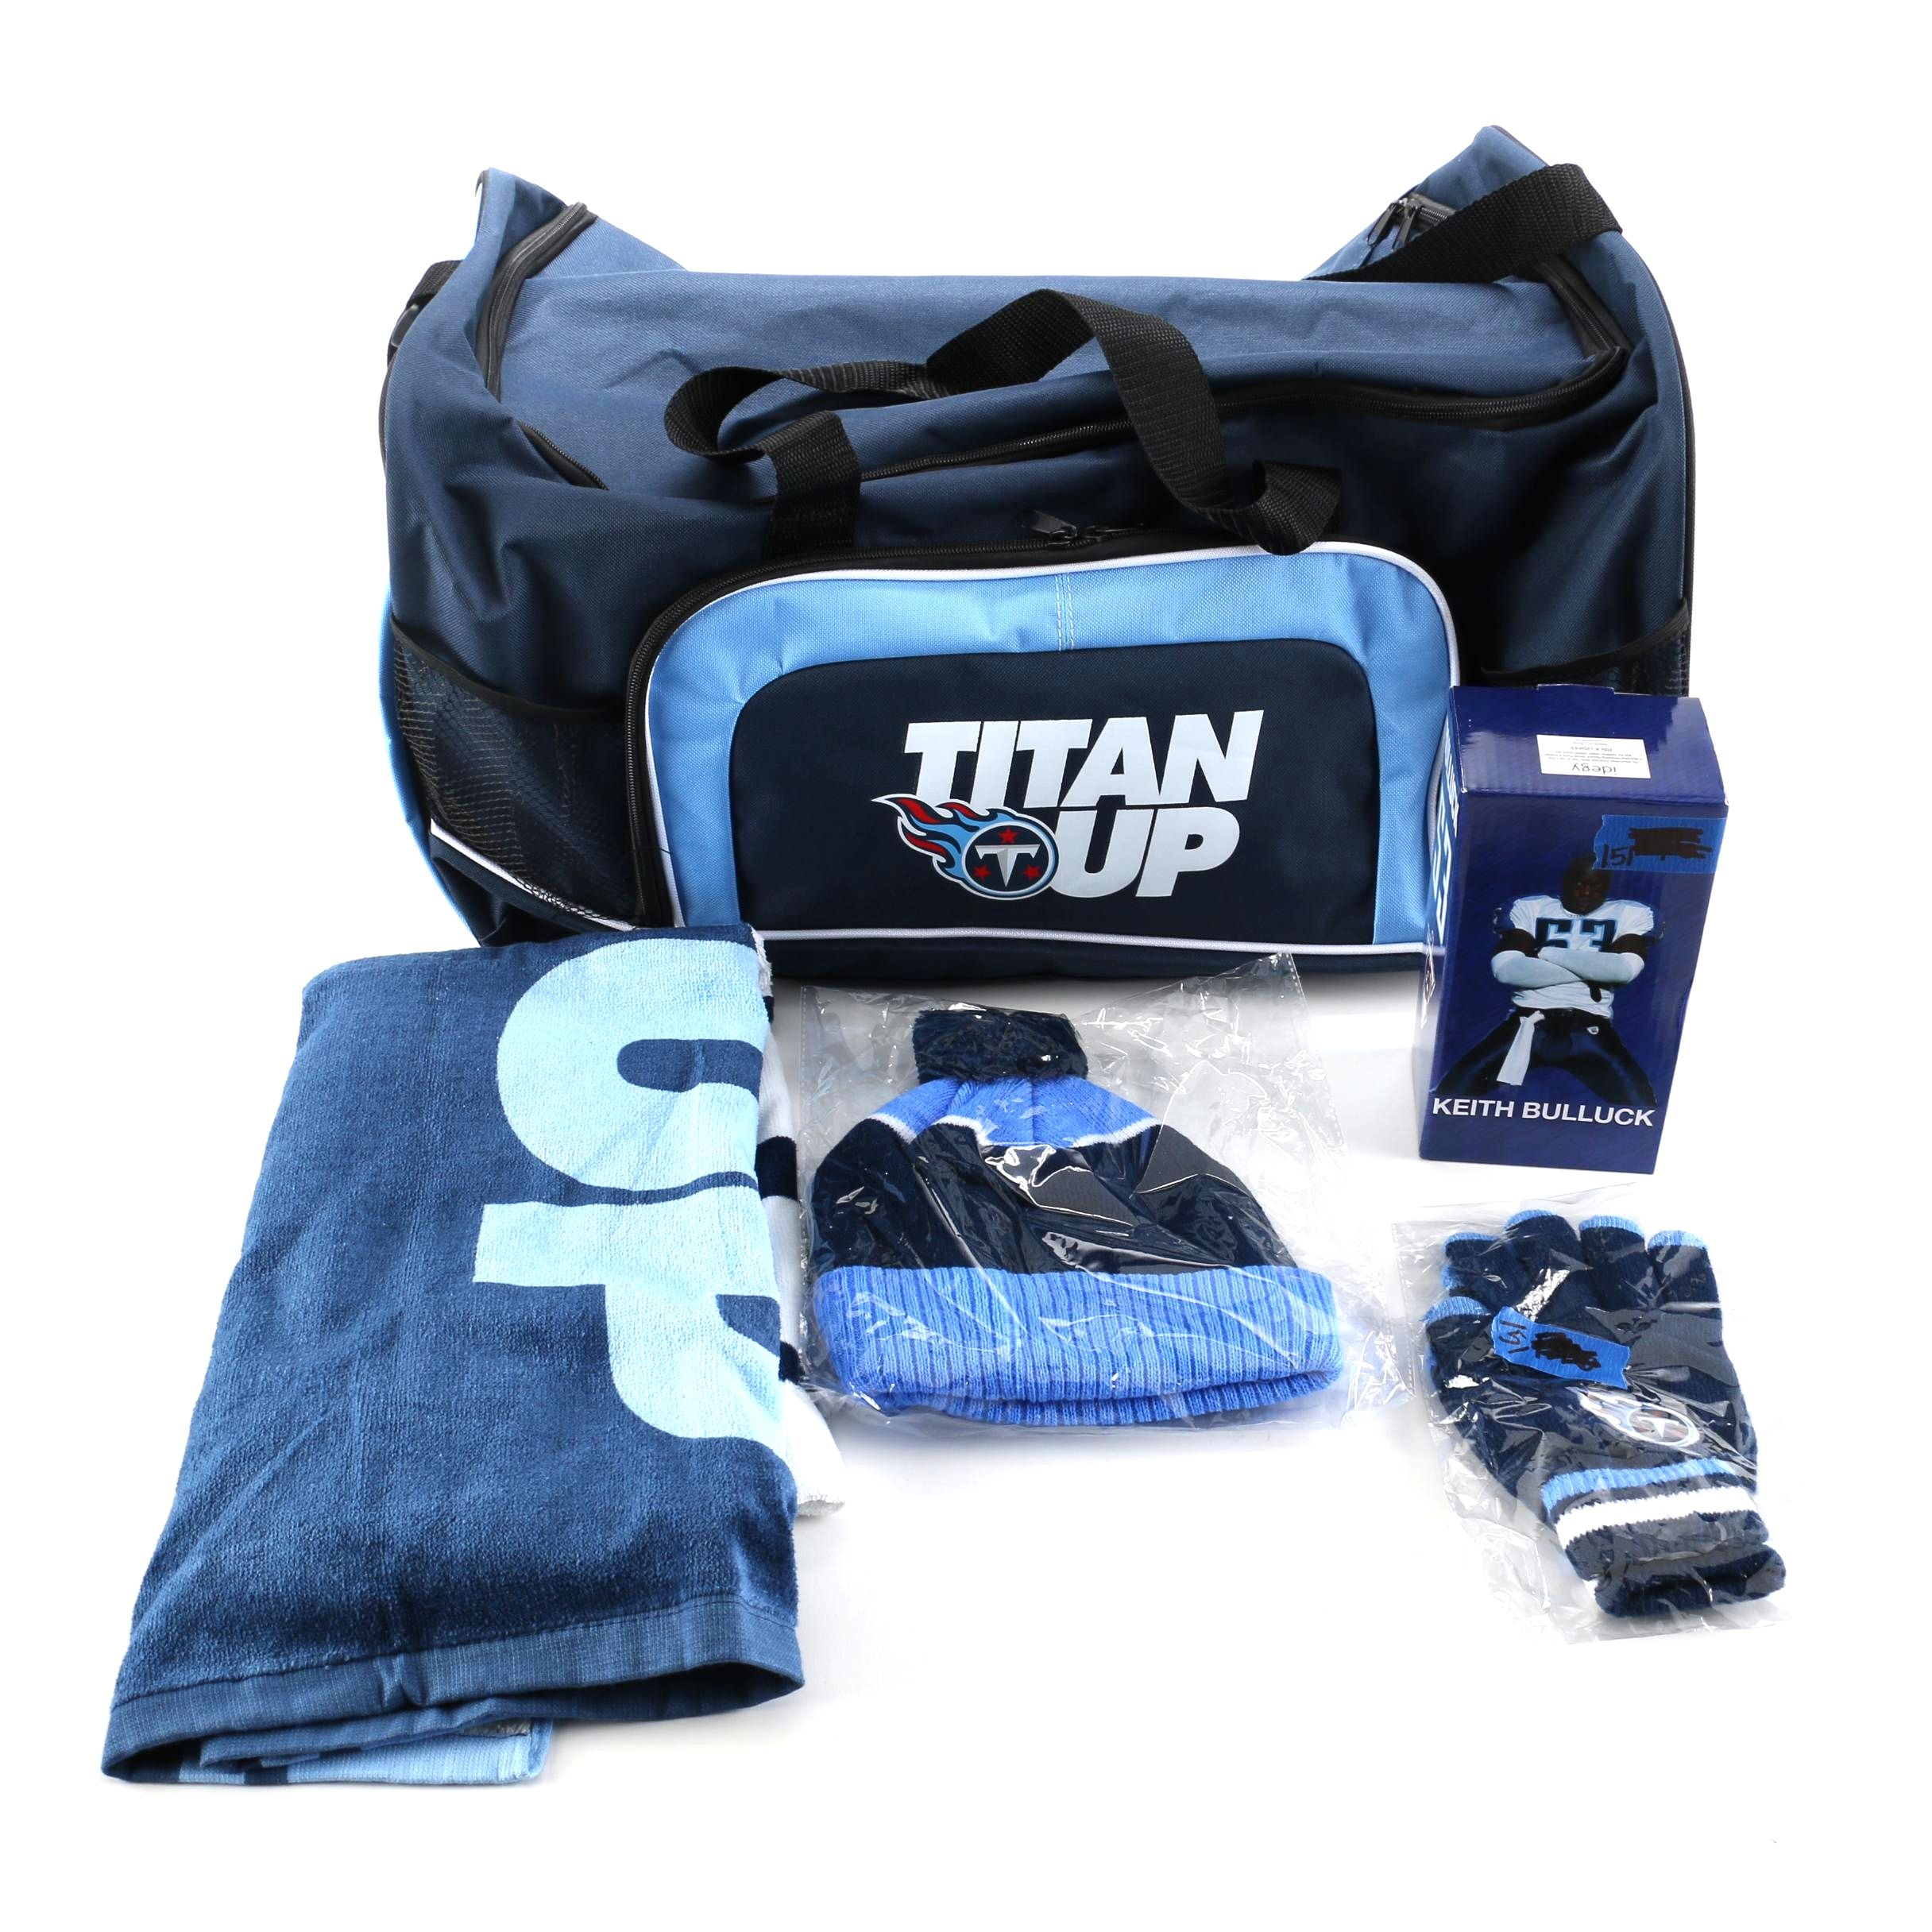 Tennessee Titans Gym Bag and Gear